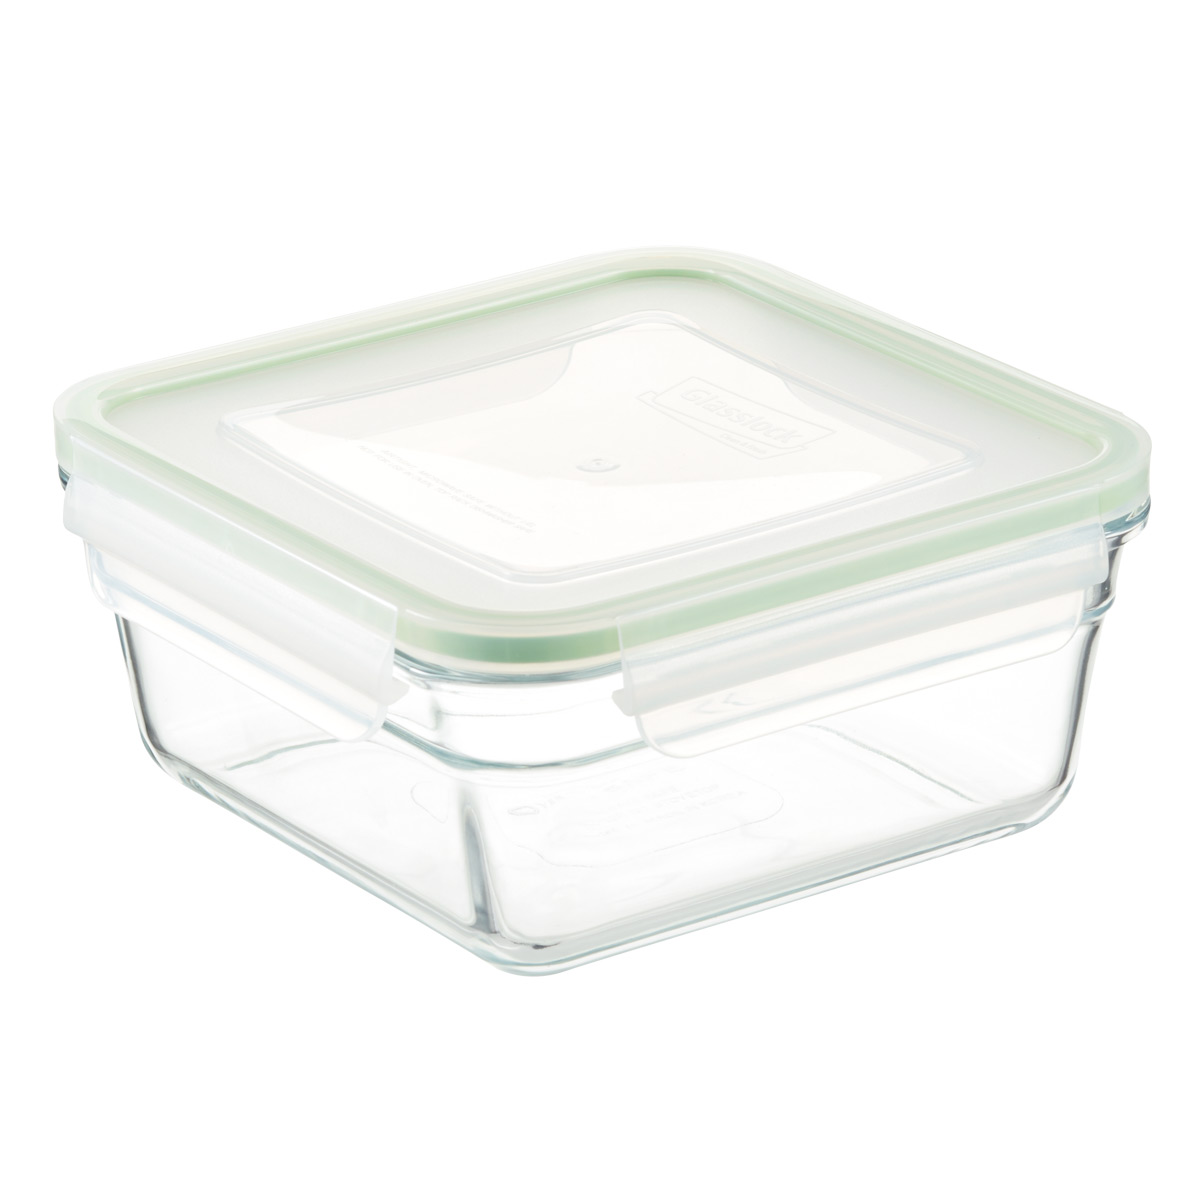 fridge organization clear storage containers